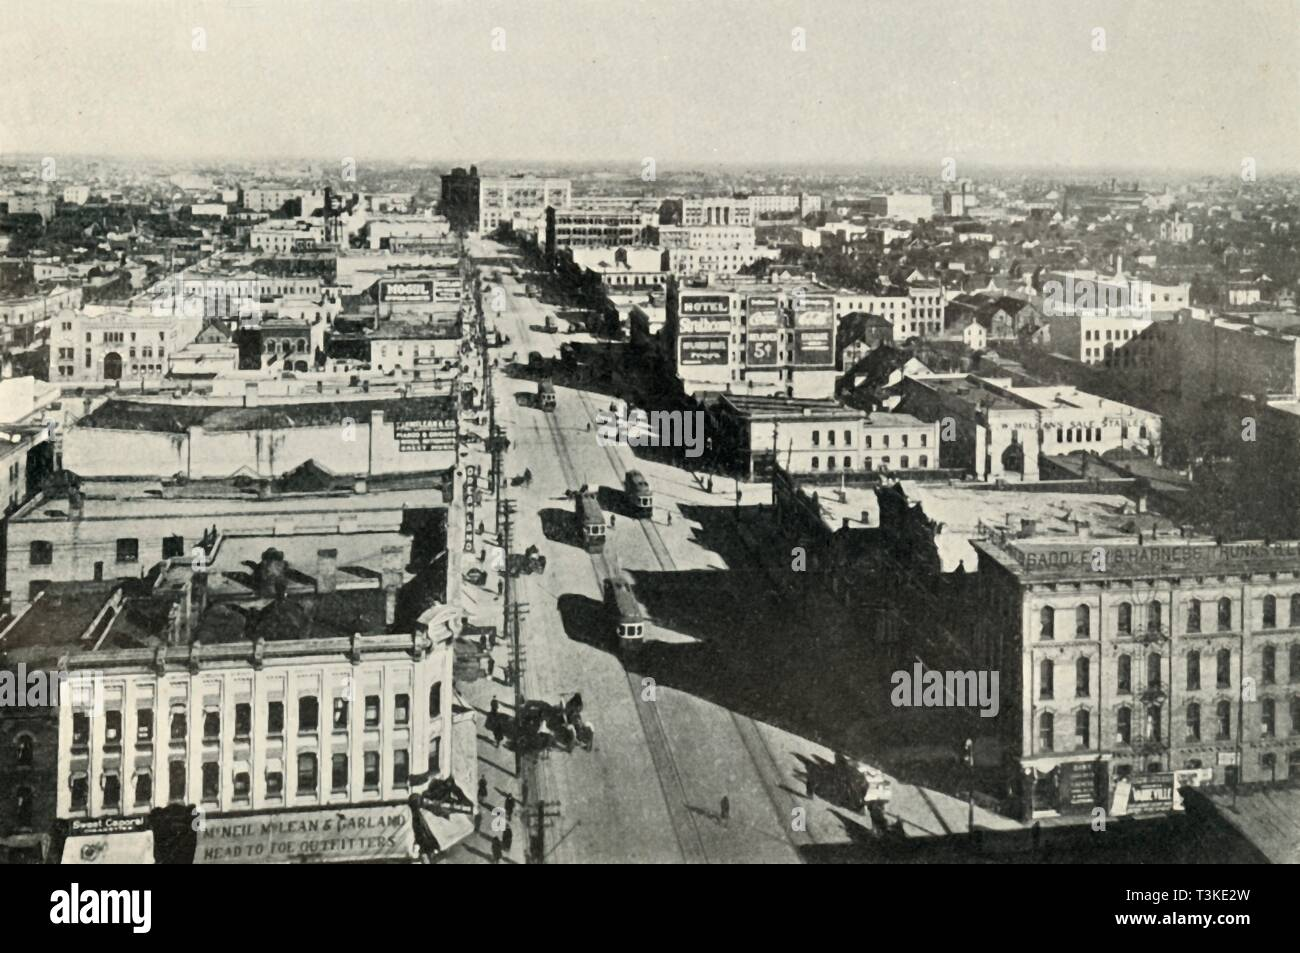 'Winnipeg To-Day; Looking Up Main Street. - The Rapid Growth of Modern Canada', c1930. Creator: Valentine & Sons Ltd. - Stock Image